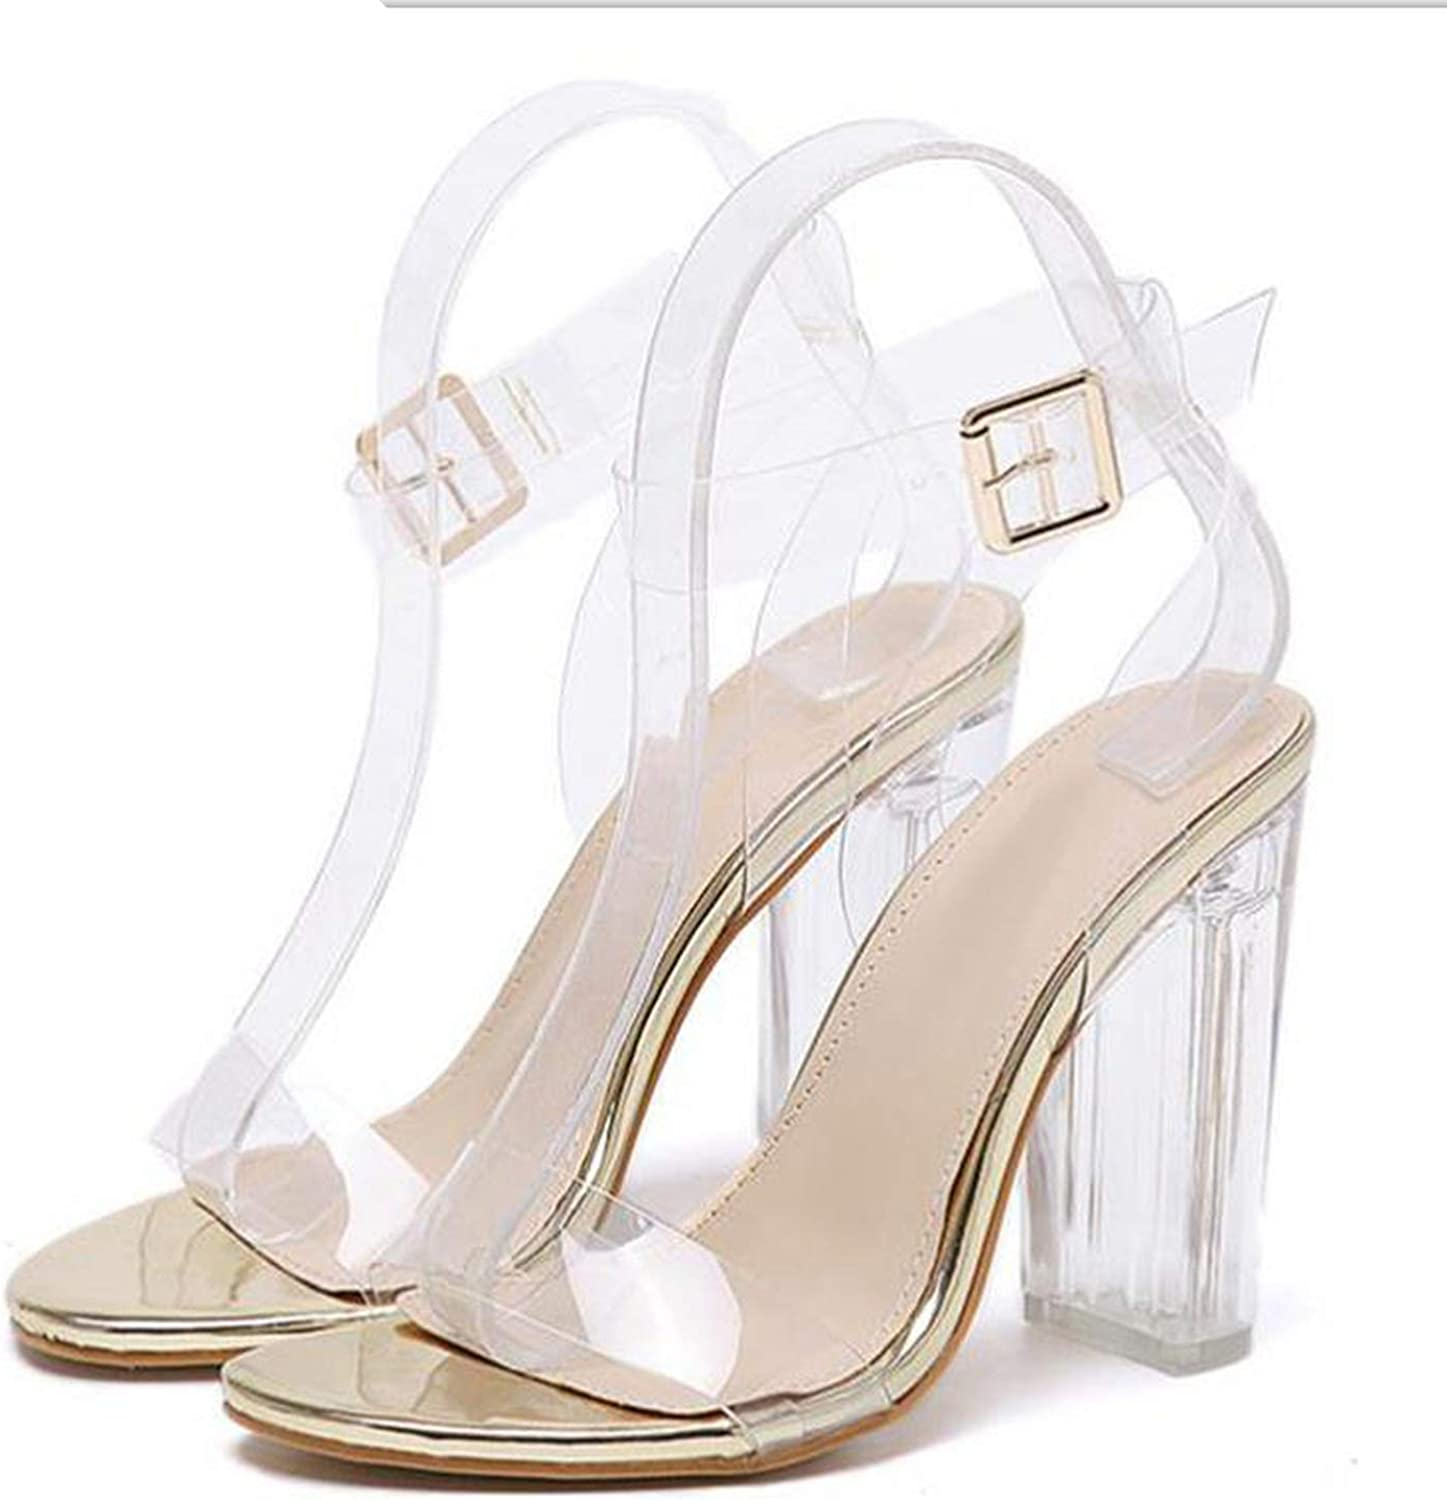 PVC Women Sandals Sexy Clear Transparent Buckle Strap High Heels shoes,golden,4